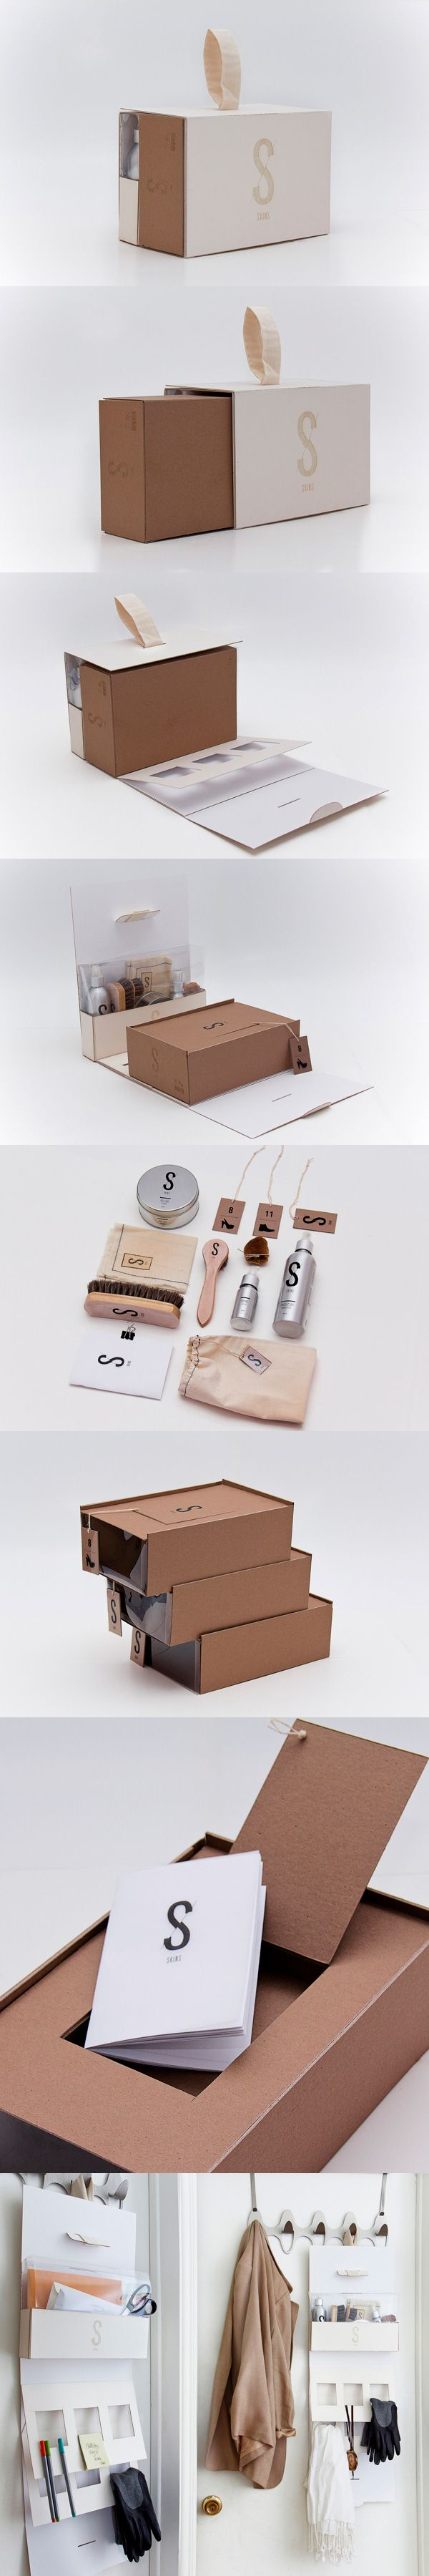 "SKINS Shoe shine ""Box""/Organizer Concept by Jiani Lu 